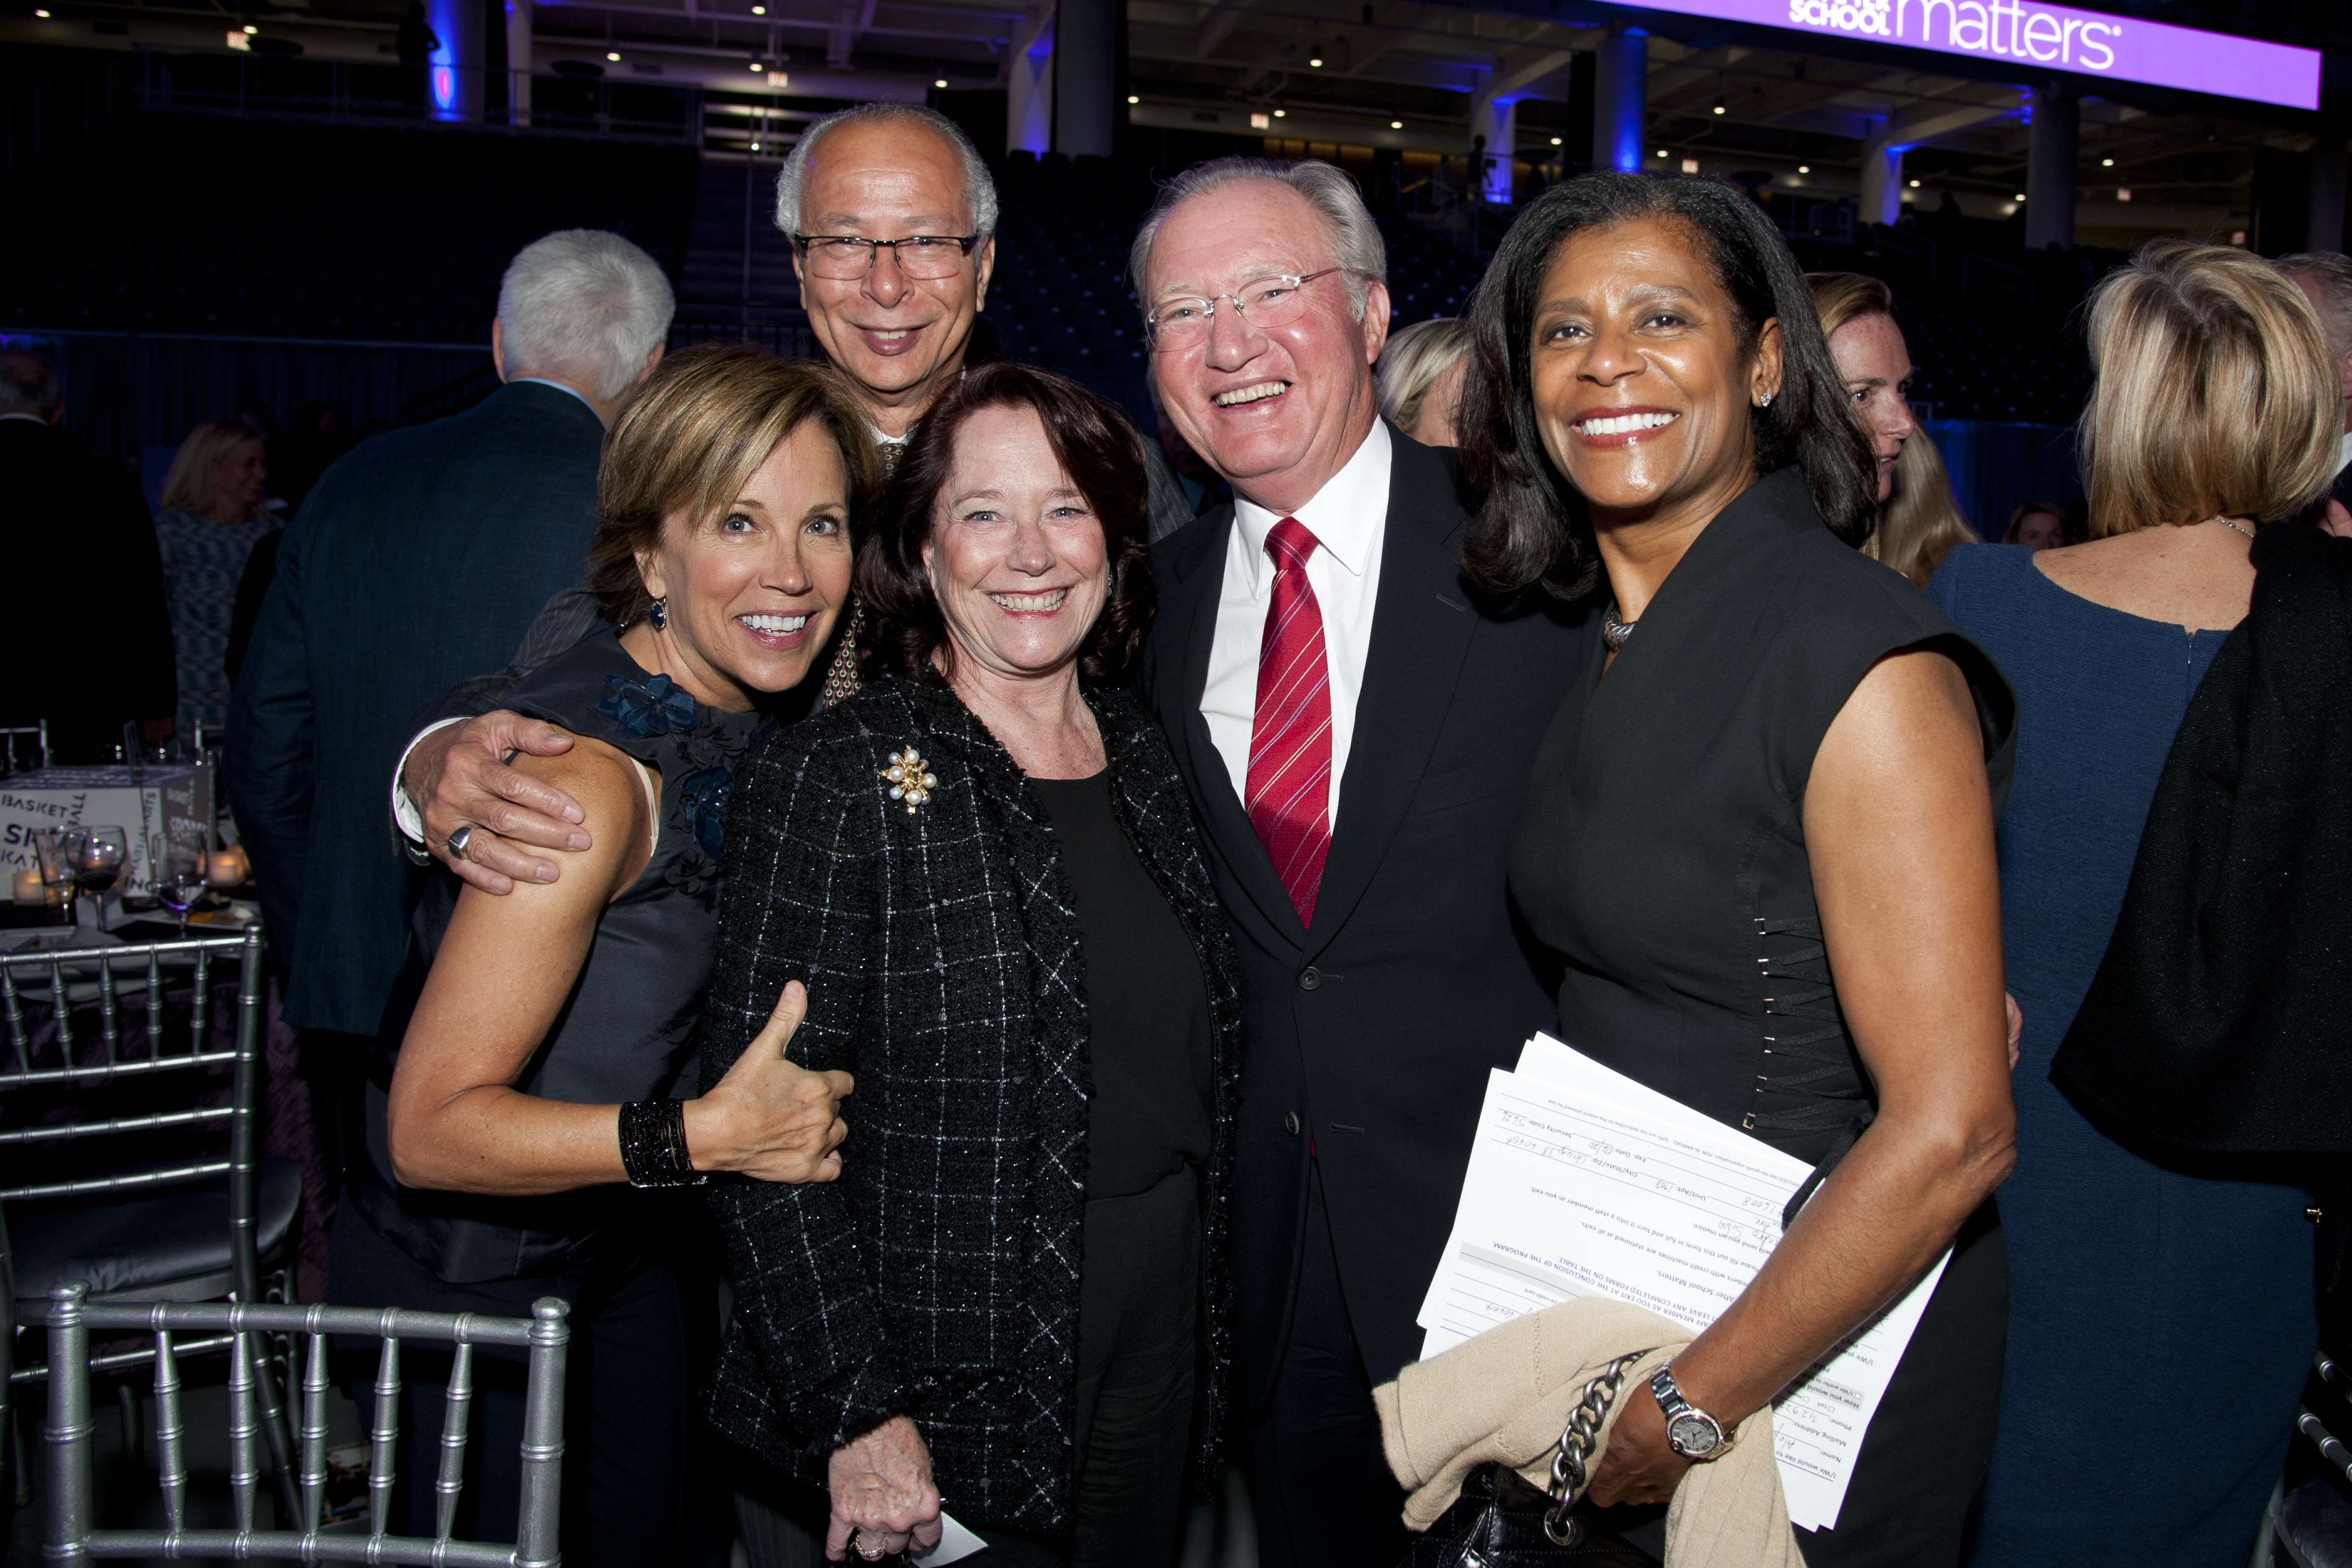 <p>Youth supporters Bernie Keller, Sam Scott, Jackie Tilton, Glenn Tilton and Dona Scott pose on the arena floor of Wintrust Arena after an evening of youth performances at After School Matters Annual Gala on September 18, 2017. Photo credit: Robert Carl</p>